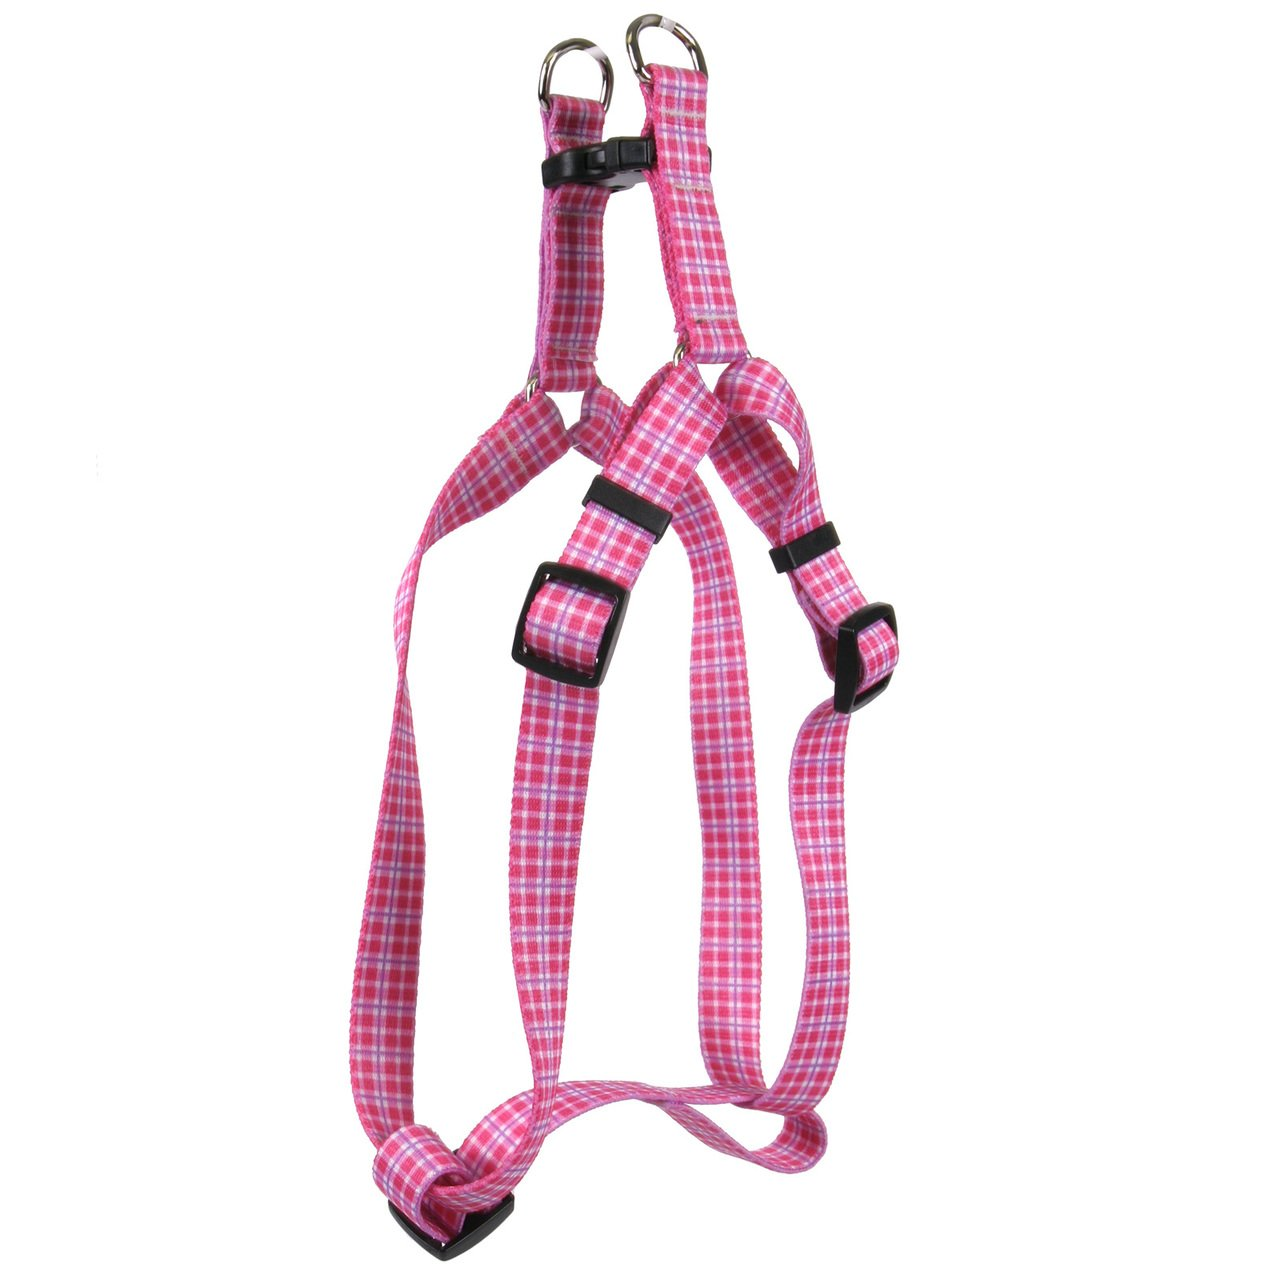 Yellow Dog Design Standard Step-in Harness, Preppy Plaid Pink, Small 9'' - 15''